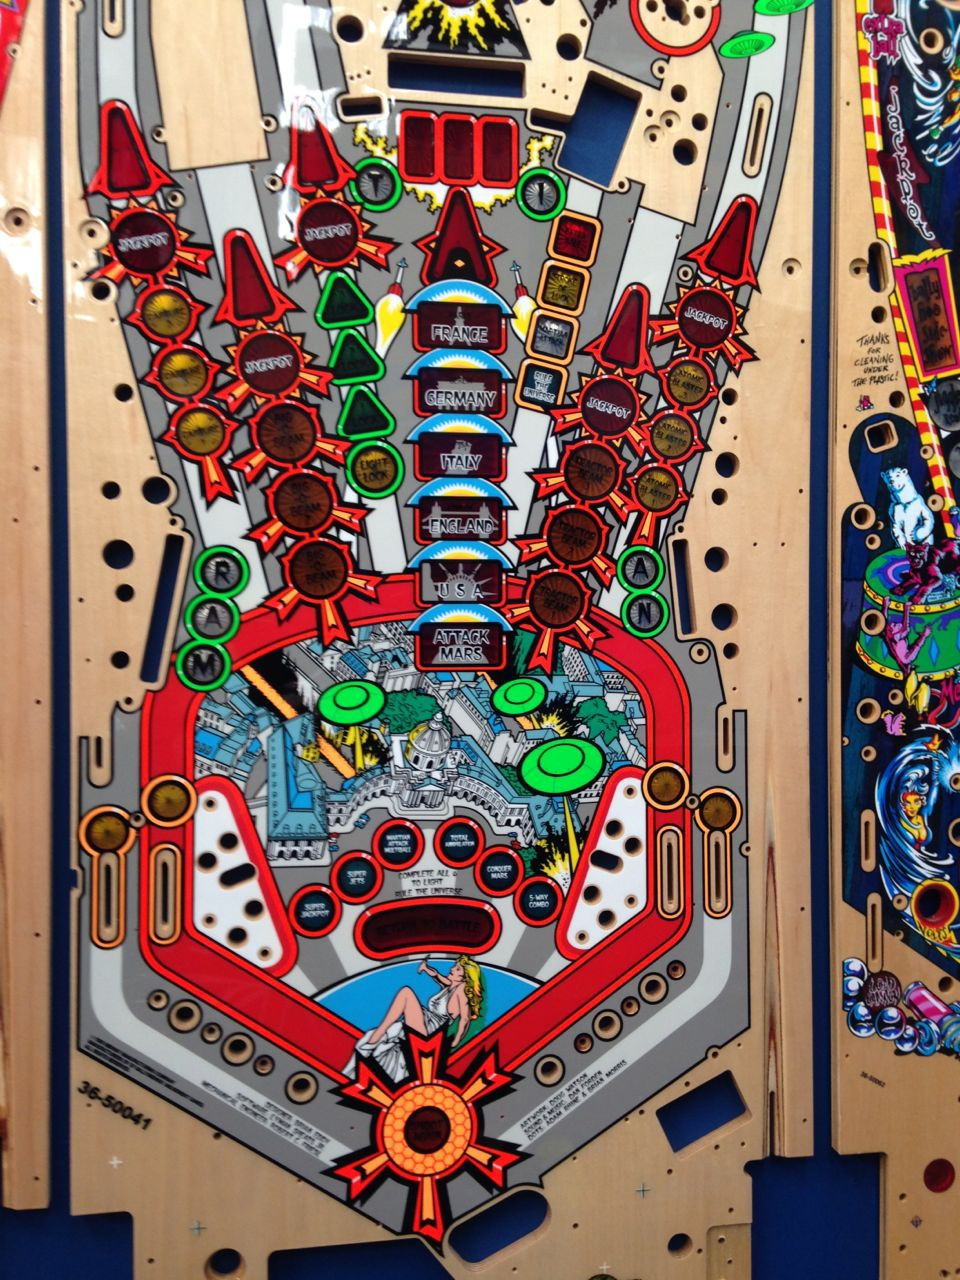 Harley Davidson Prices >> Attack From Mars Playfield - PLAYFIELDS & INSERTS ...